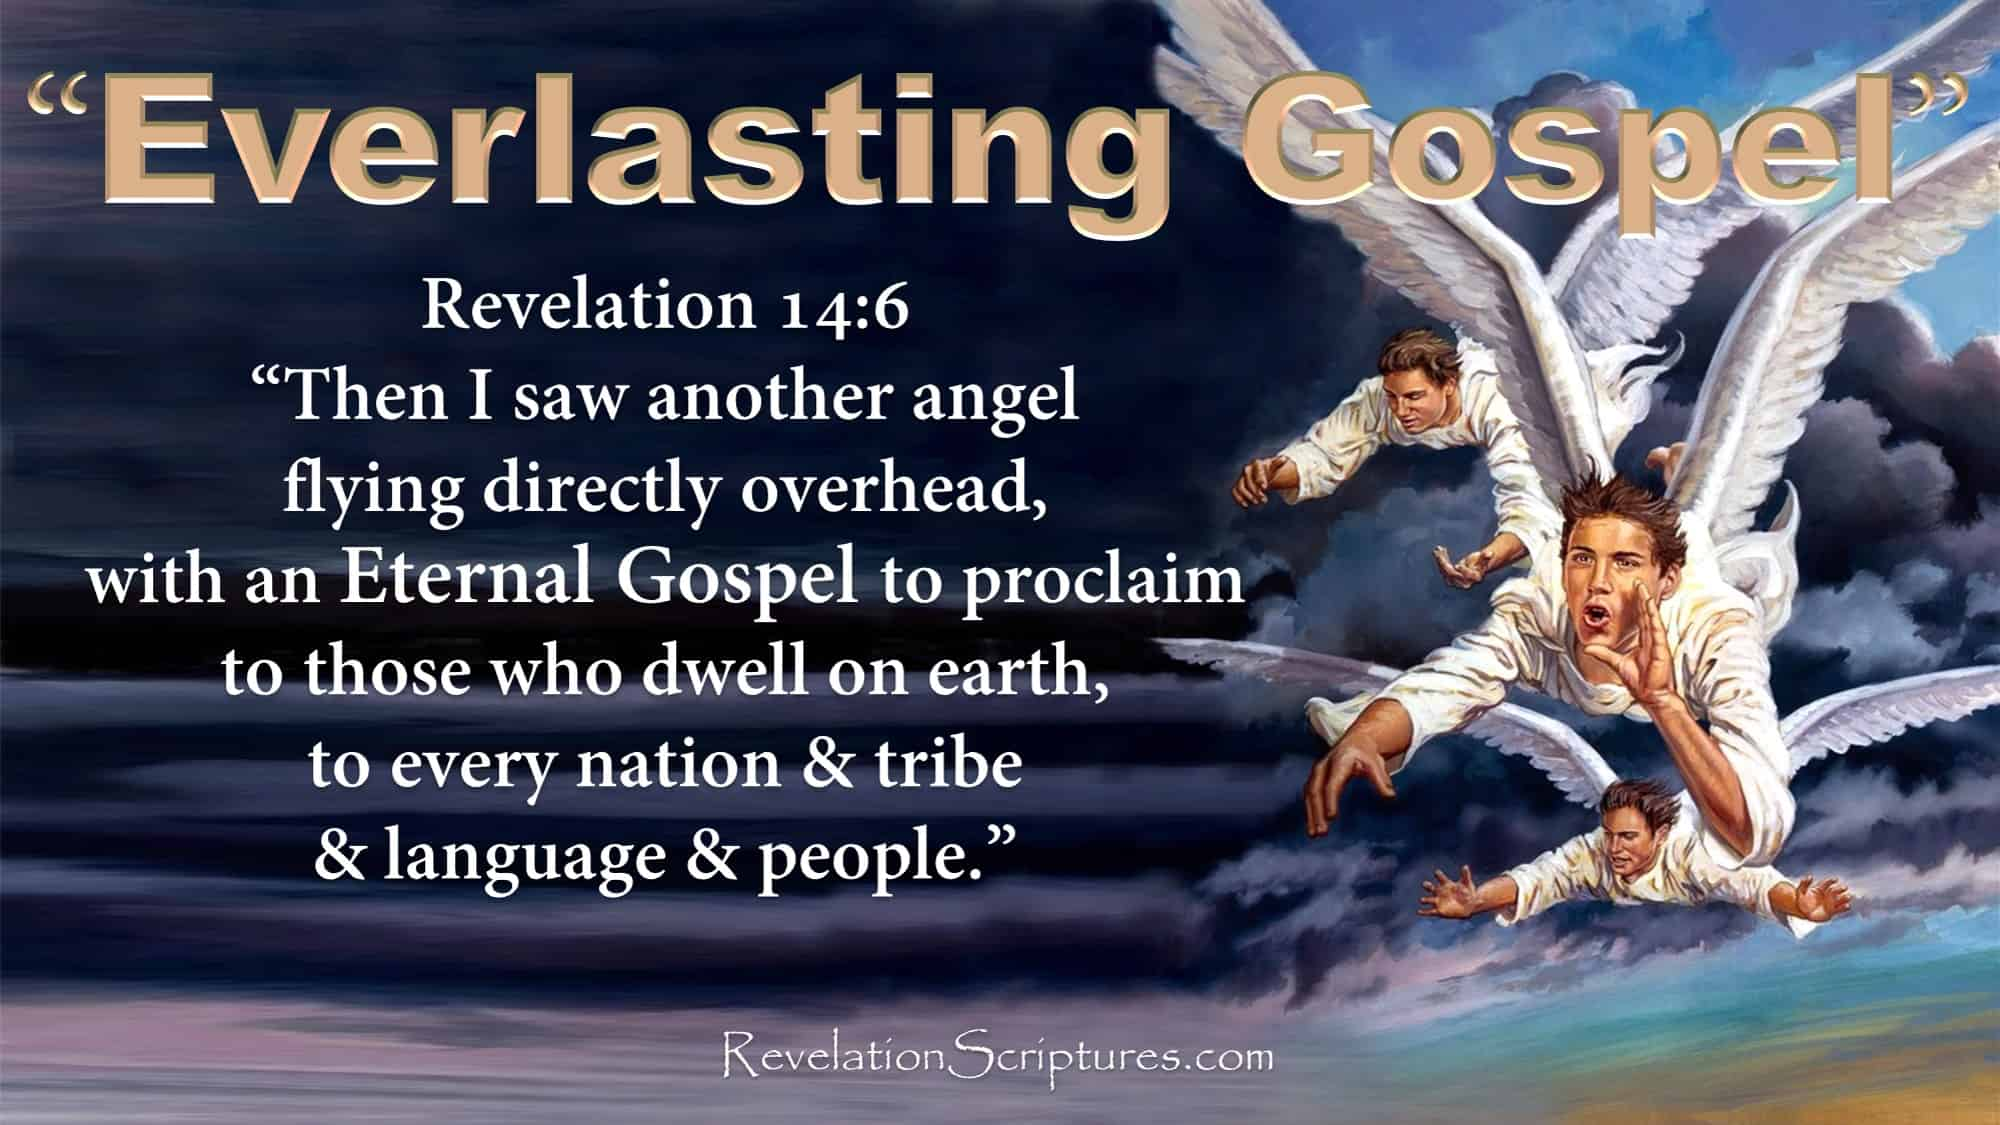 3 Angels Message,Message of the three Angels,Three angesl Message,Message of the 3 Angesl,Eternal Gosple,Everlasting Gosple,Revelation 14,Rev 14,Book of Revelation,Chapter 14 Ch 14,Fear God,Fear God and give him glory,hour of Judgment,worship the creator,heaven,earth,sea,springs of water,Babylon the Great,Fallen is Babylon,Babylon Fallen,Babylon is Fallen,Made nations drink the wine,sexual immorality,The Beast,Beast Image Mark,Beast,Image,Mark,666,Do not worship,3rd Angel,Third Angel,mark on forehead,hand,mark on hand,drink wine of God's Wrath,full strength,cup of his anger,fire and sulfer,torment,smoke,no rest day or night,worshipers of the Beast and its image,call for endurance,call for patient endurance,keep the commands,faith in Jesus,faith in Yeshua,